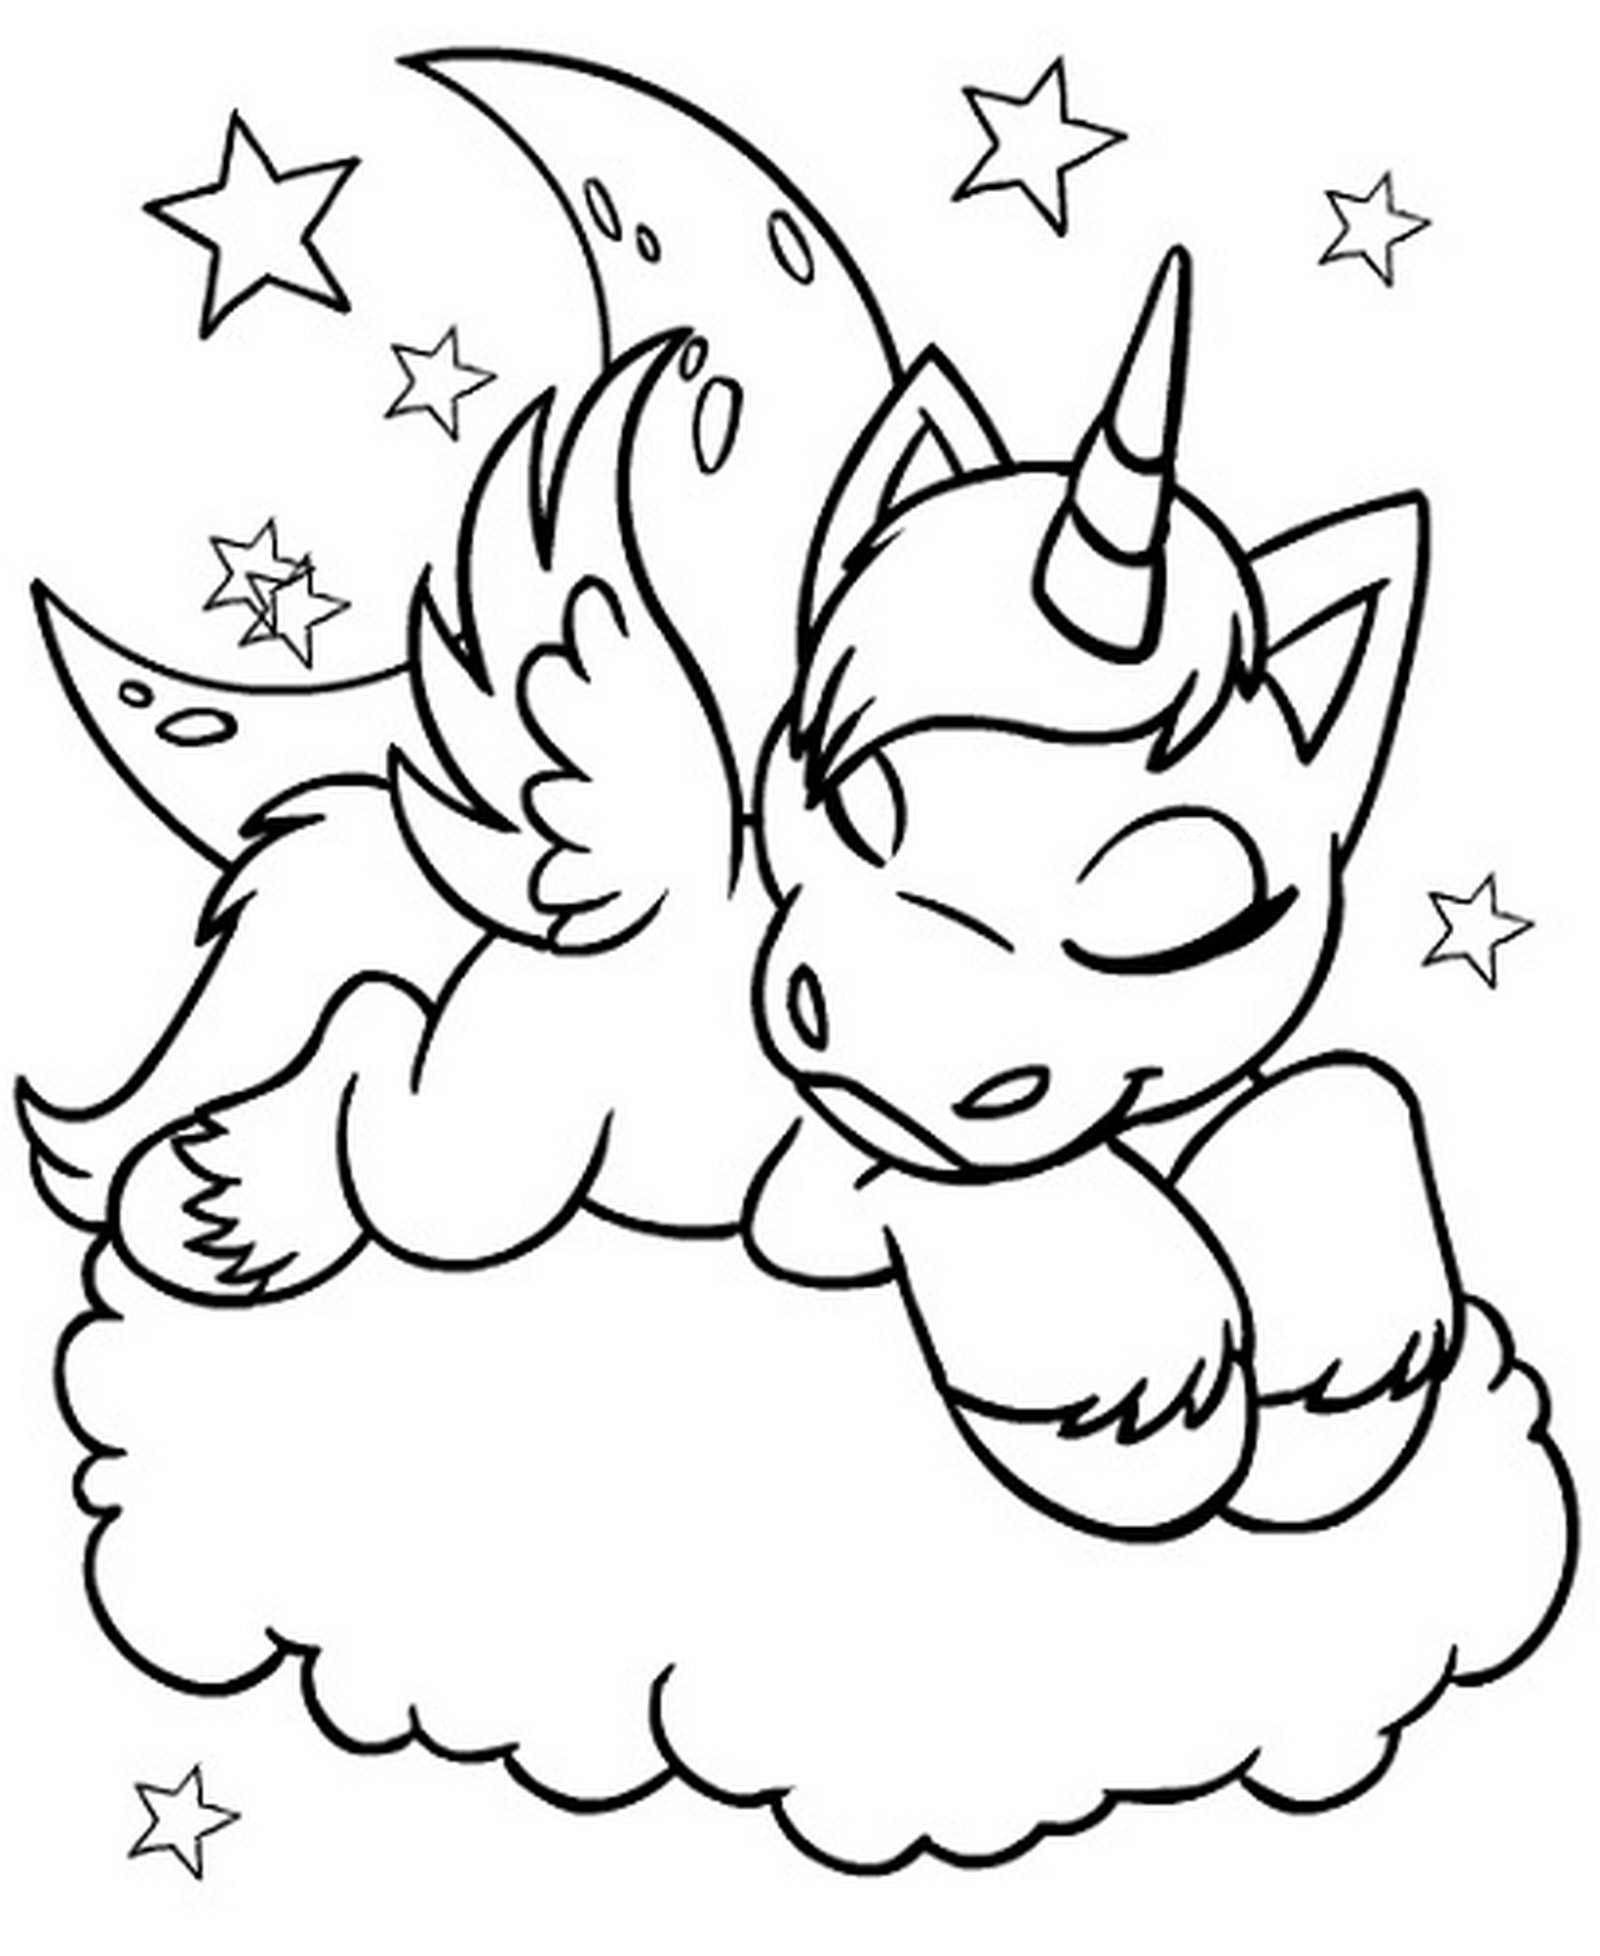 unicorn pictures for coloring cute unicorn with watermelon coloring pages for you pictures unicorn for coloring